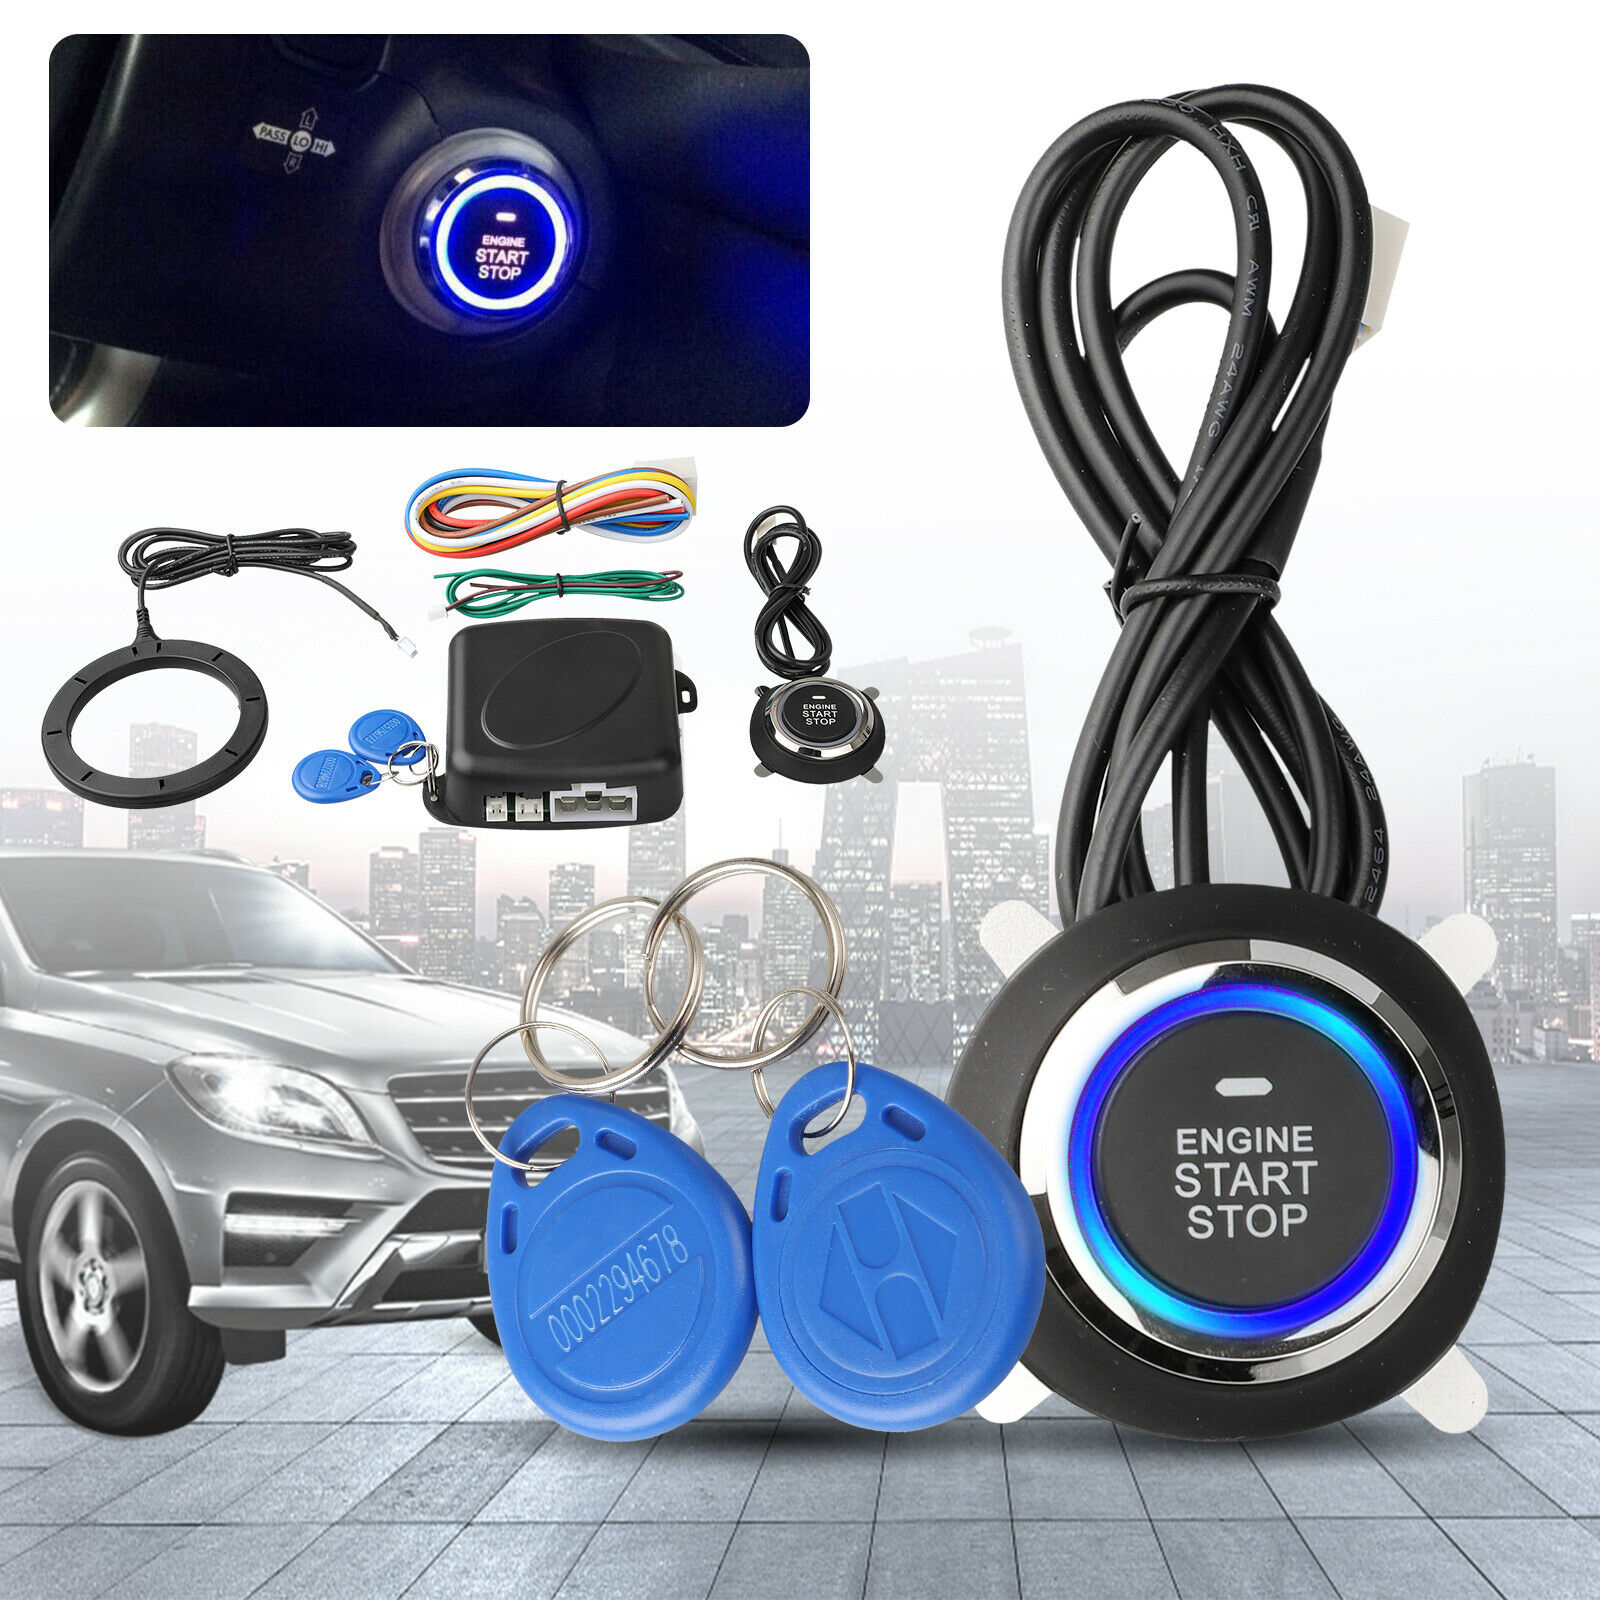 Auto Contactslot 12V RFID Push Start Knop Auto Entry Motor Start Keyless Start Stop Knop Keyless Entry Starter kit title=